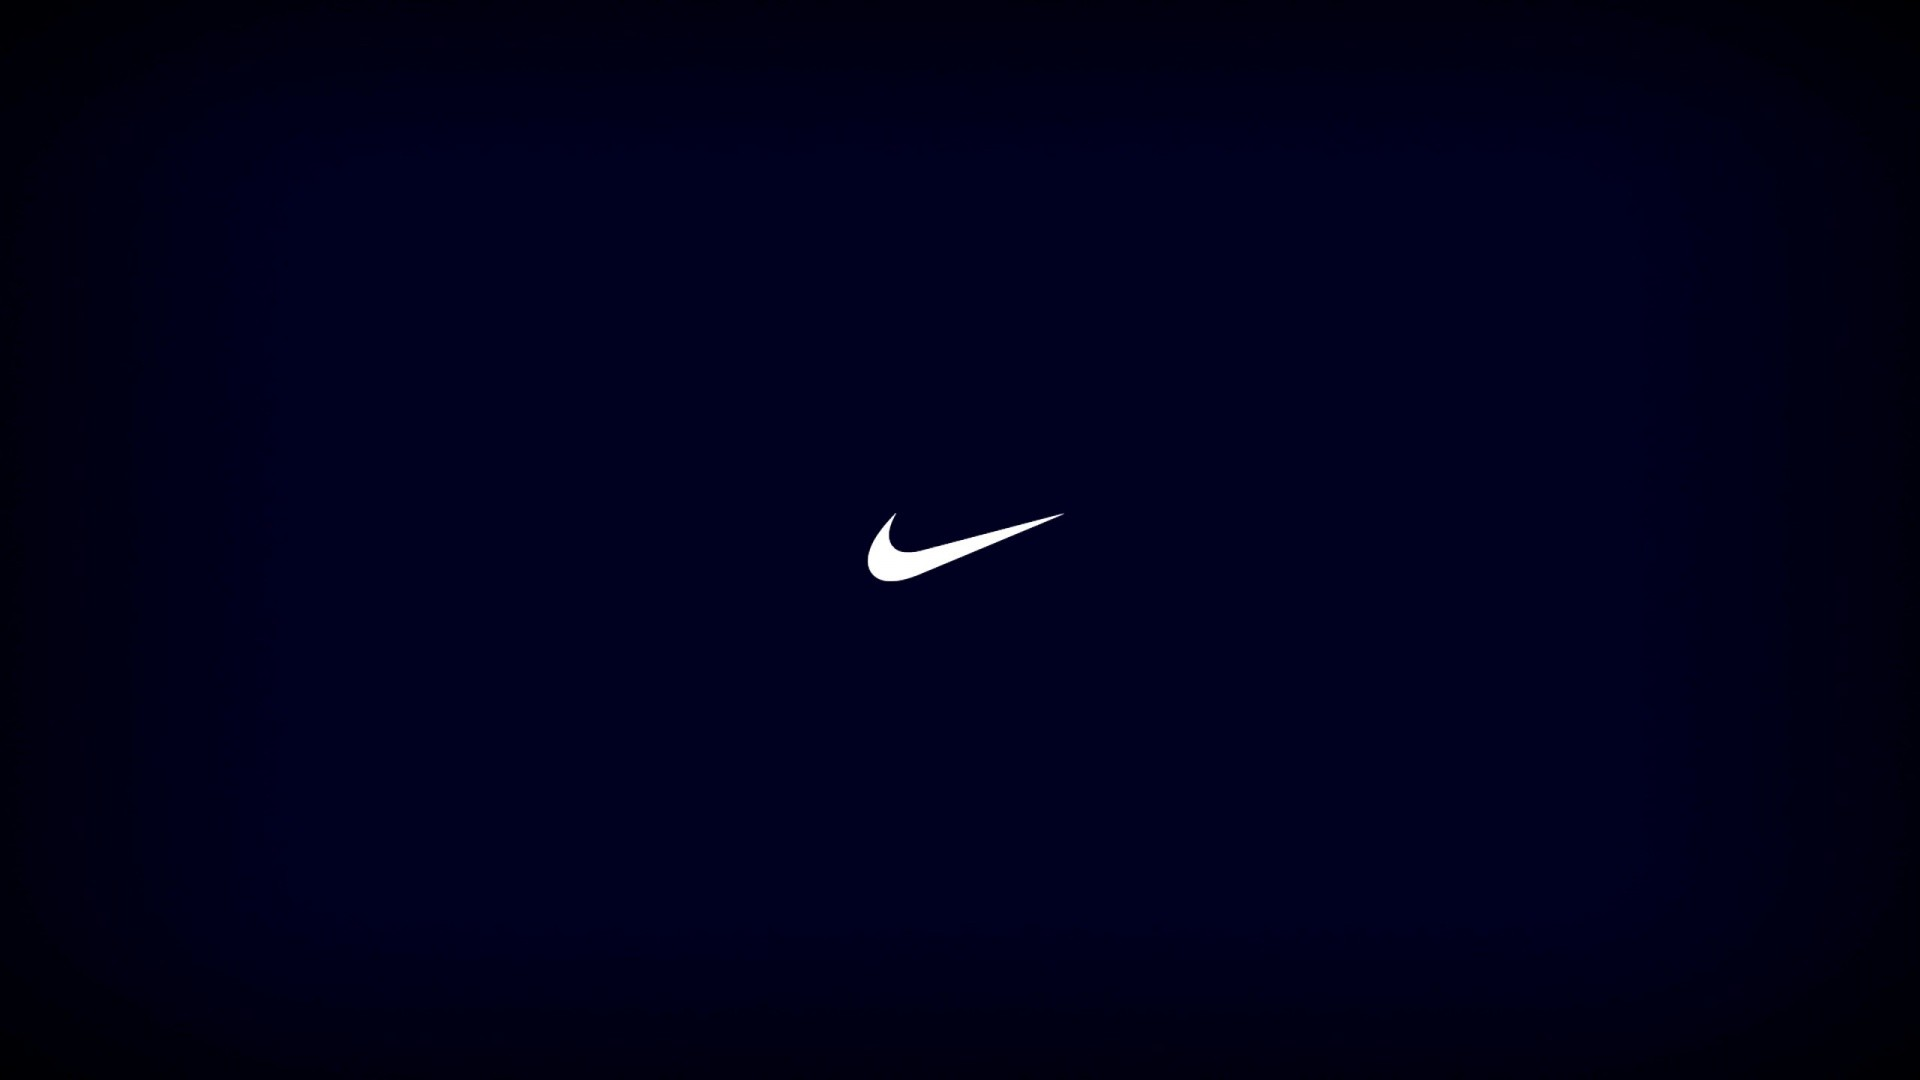 Nike logo wallpaper hd 2017 wallpapertag - Nike wallpaper hd ...